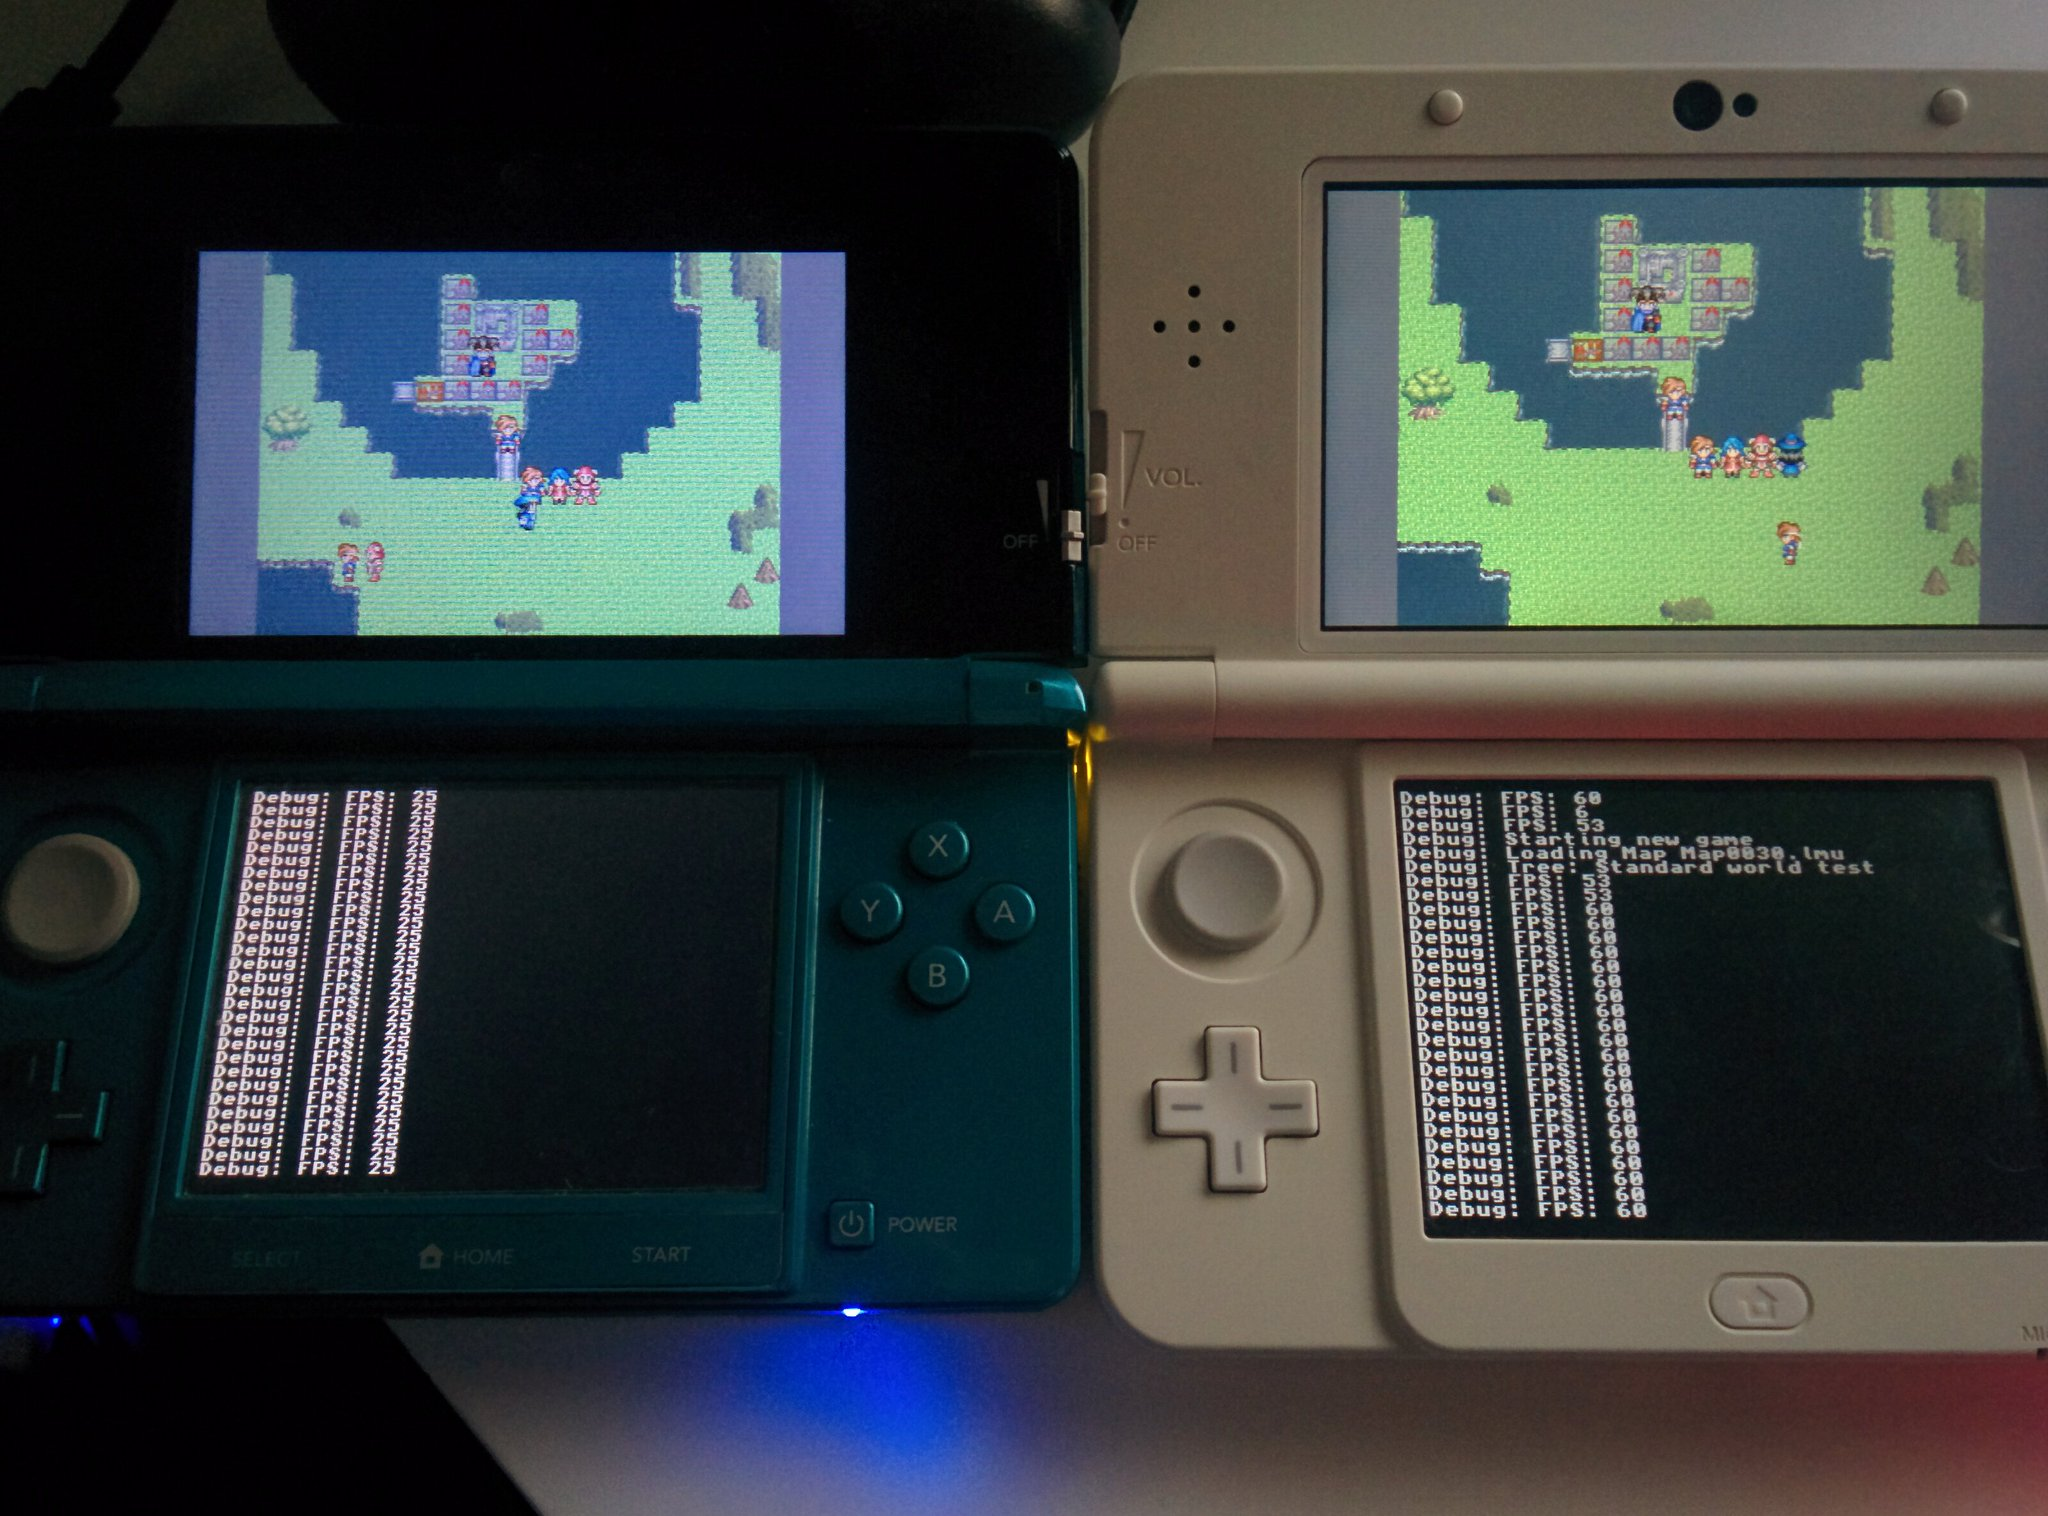 3DS - Homebrew Development and Emulators